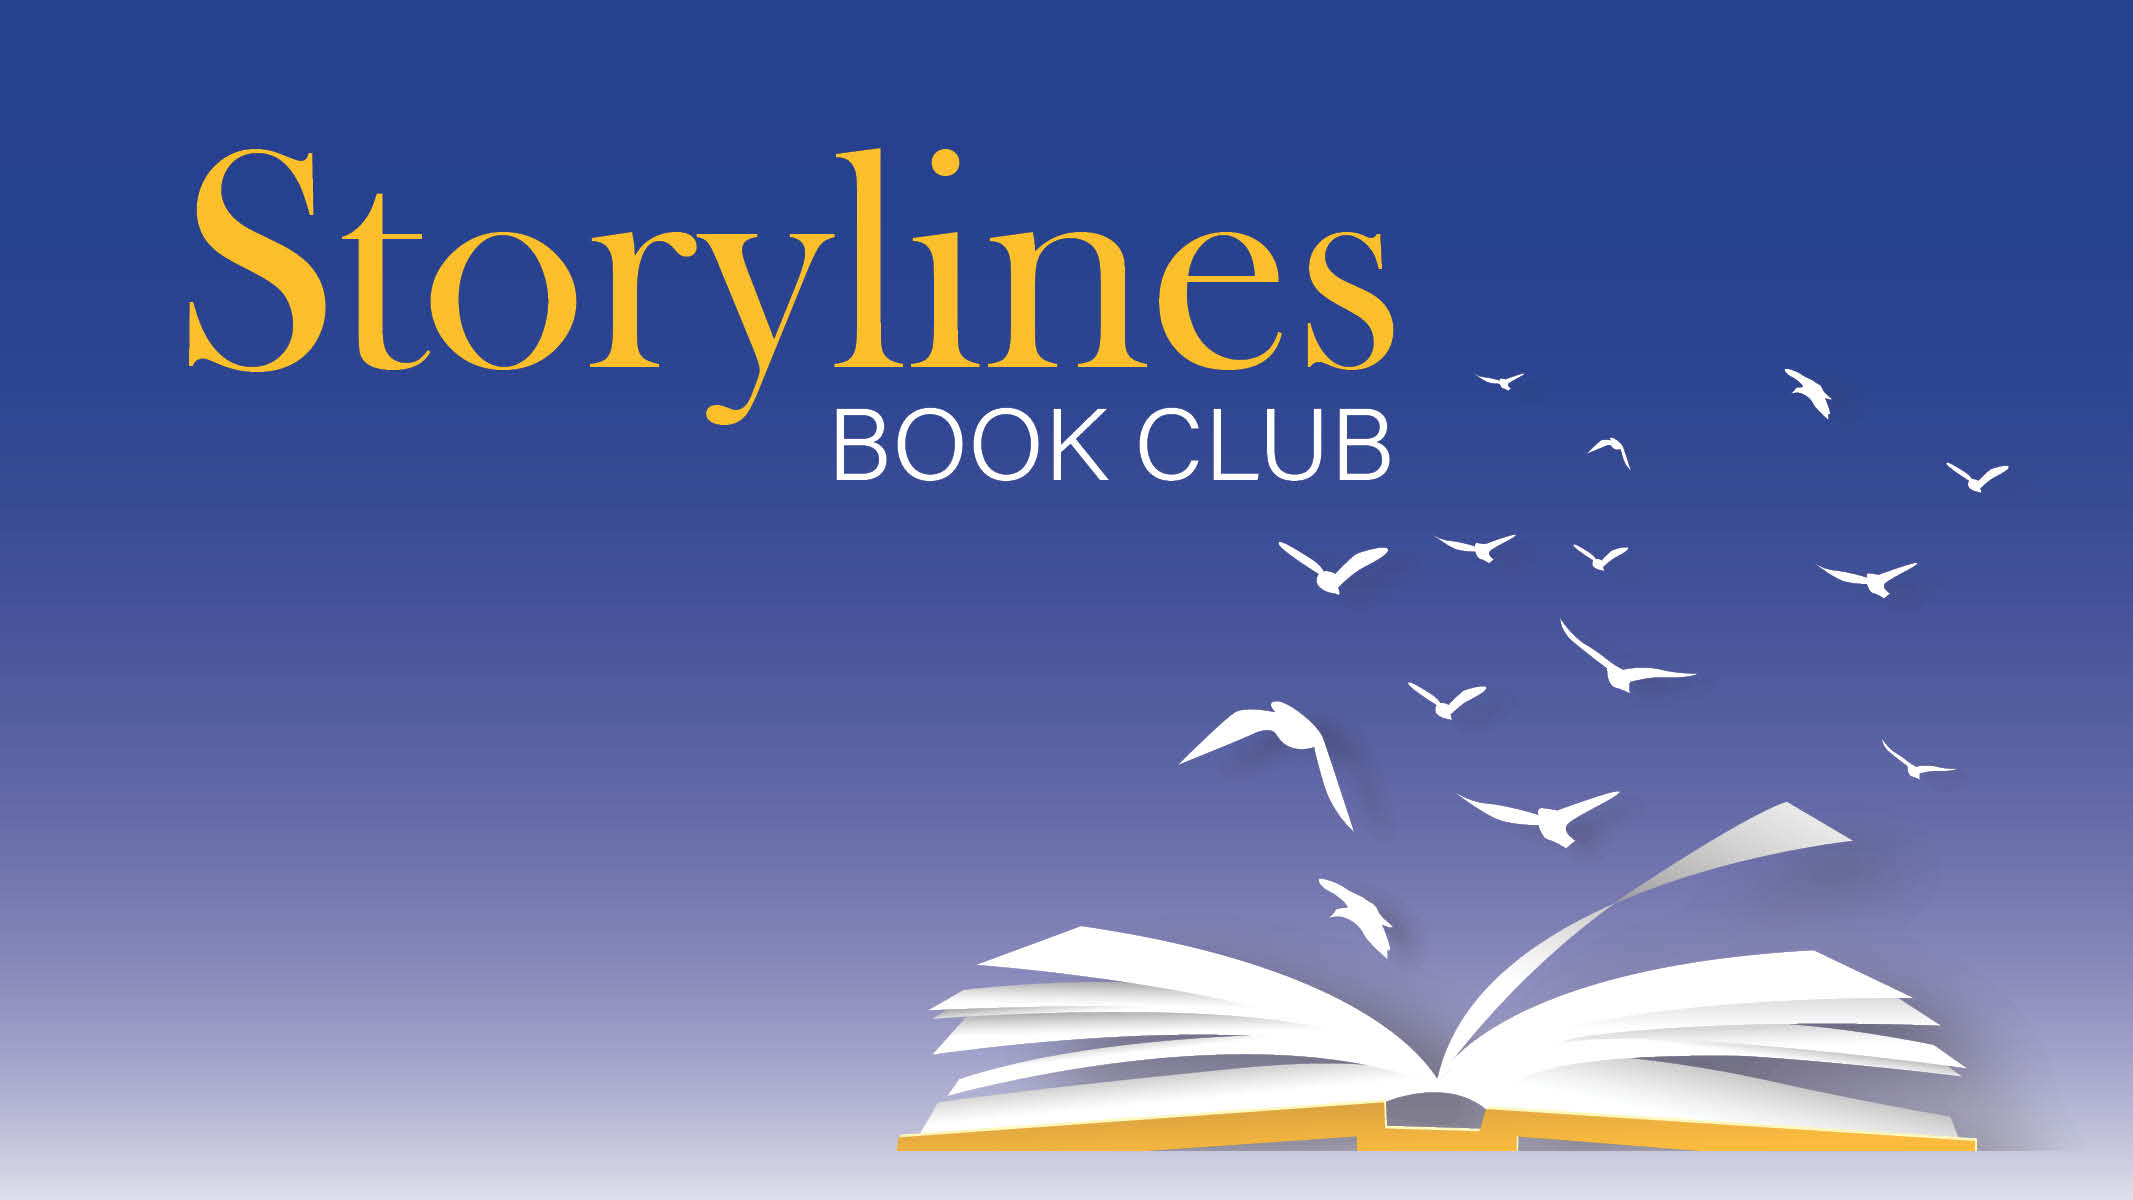 Storylines Book Club logo with birds flying out of an open book